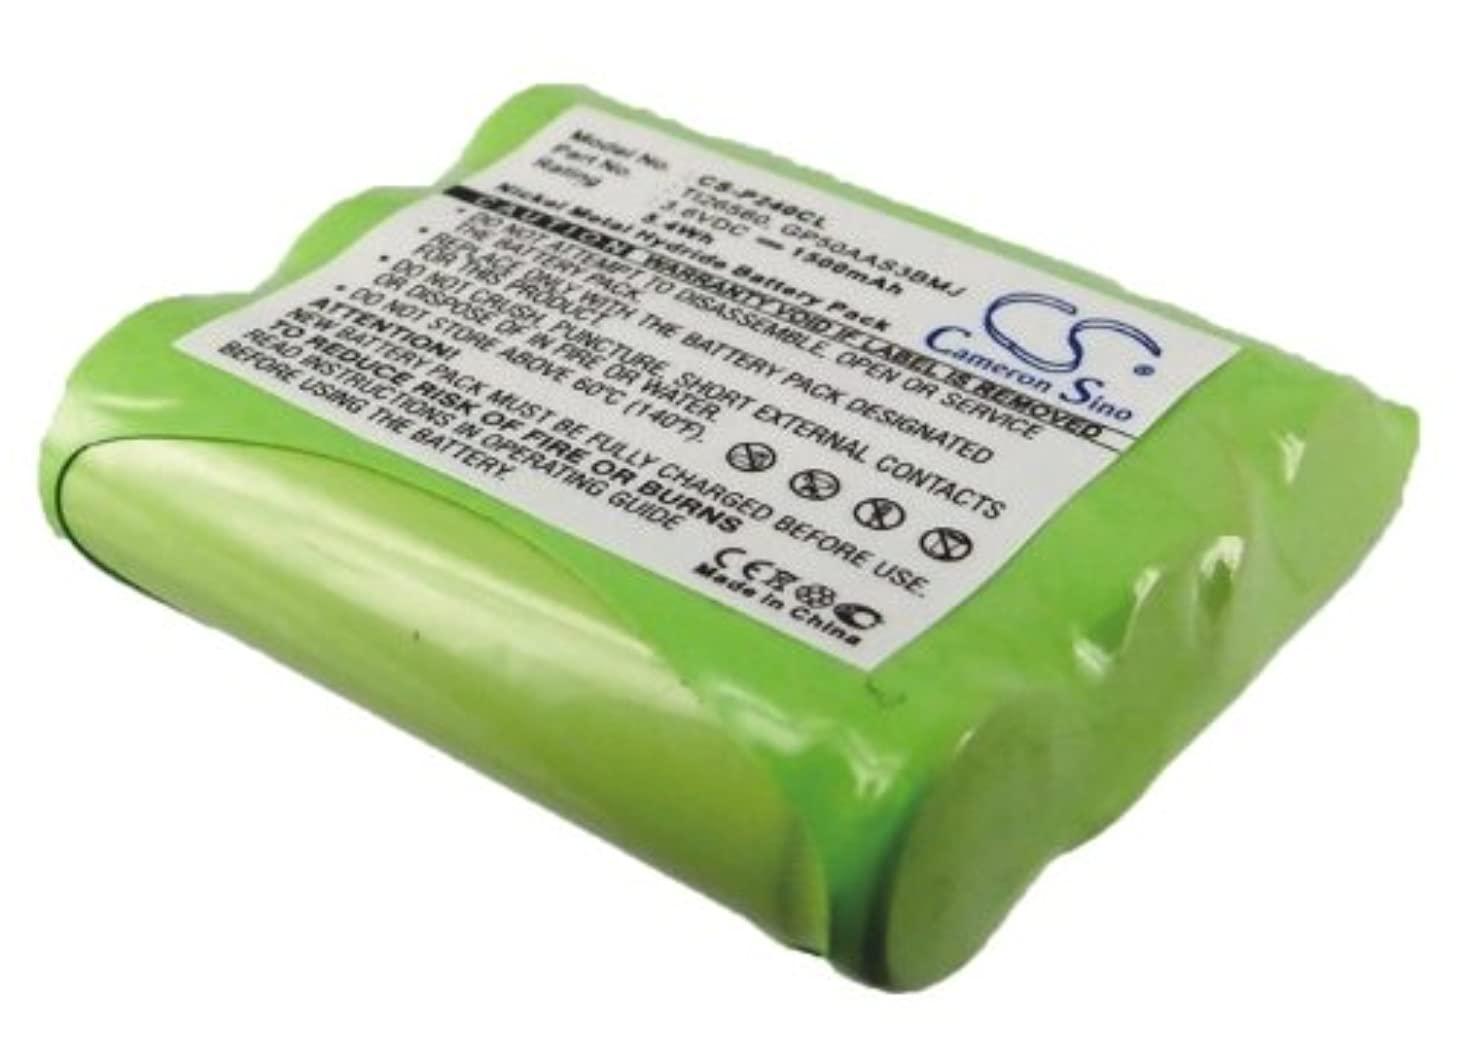 VINTRONS Rechargeable Battery 1500mAh For Radio 2-1091GE3-A, IBM-3150, 2-6938GE1, 2-7982, 9460, 25838GE1, 3301